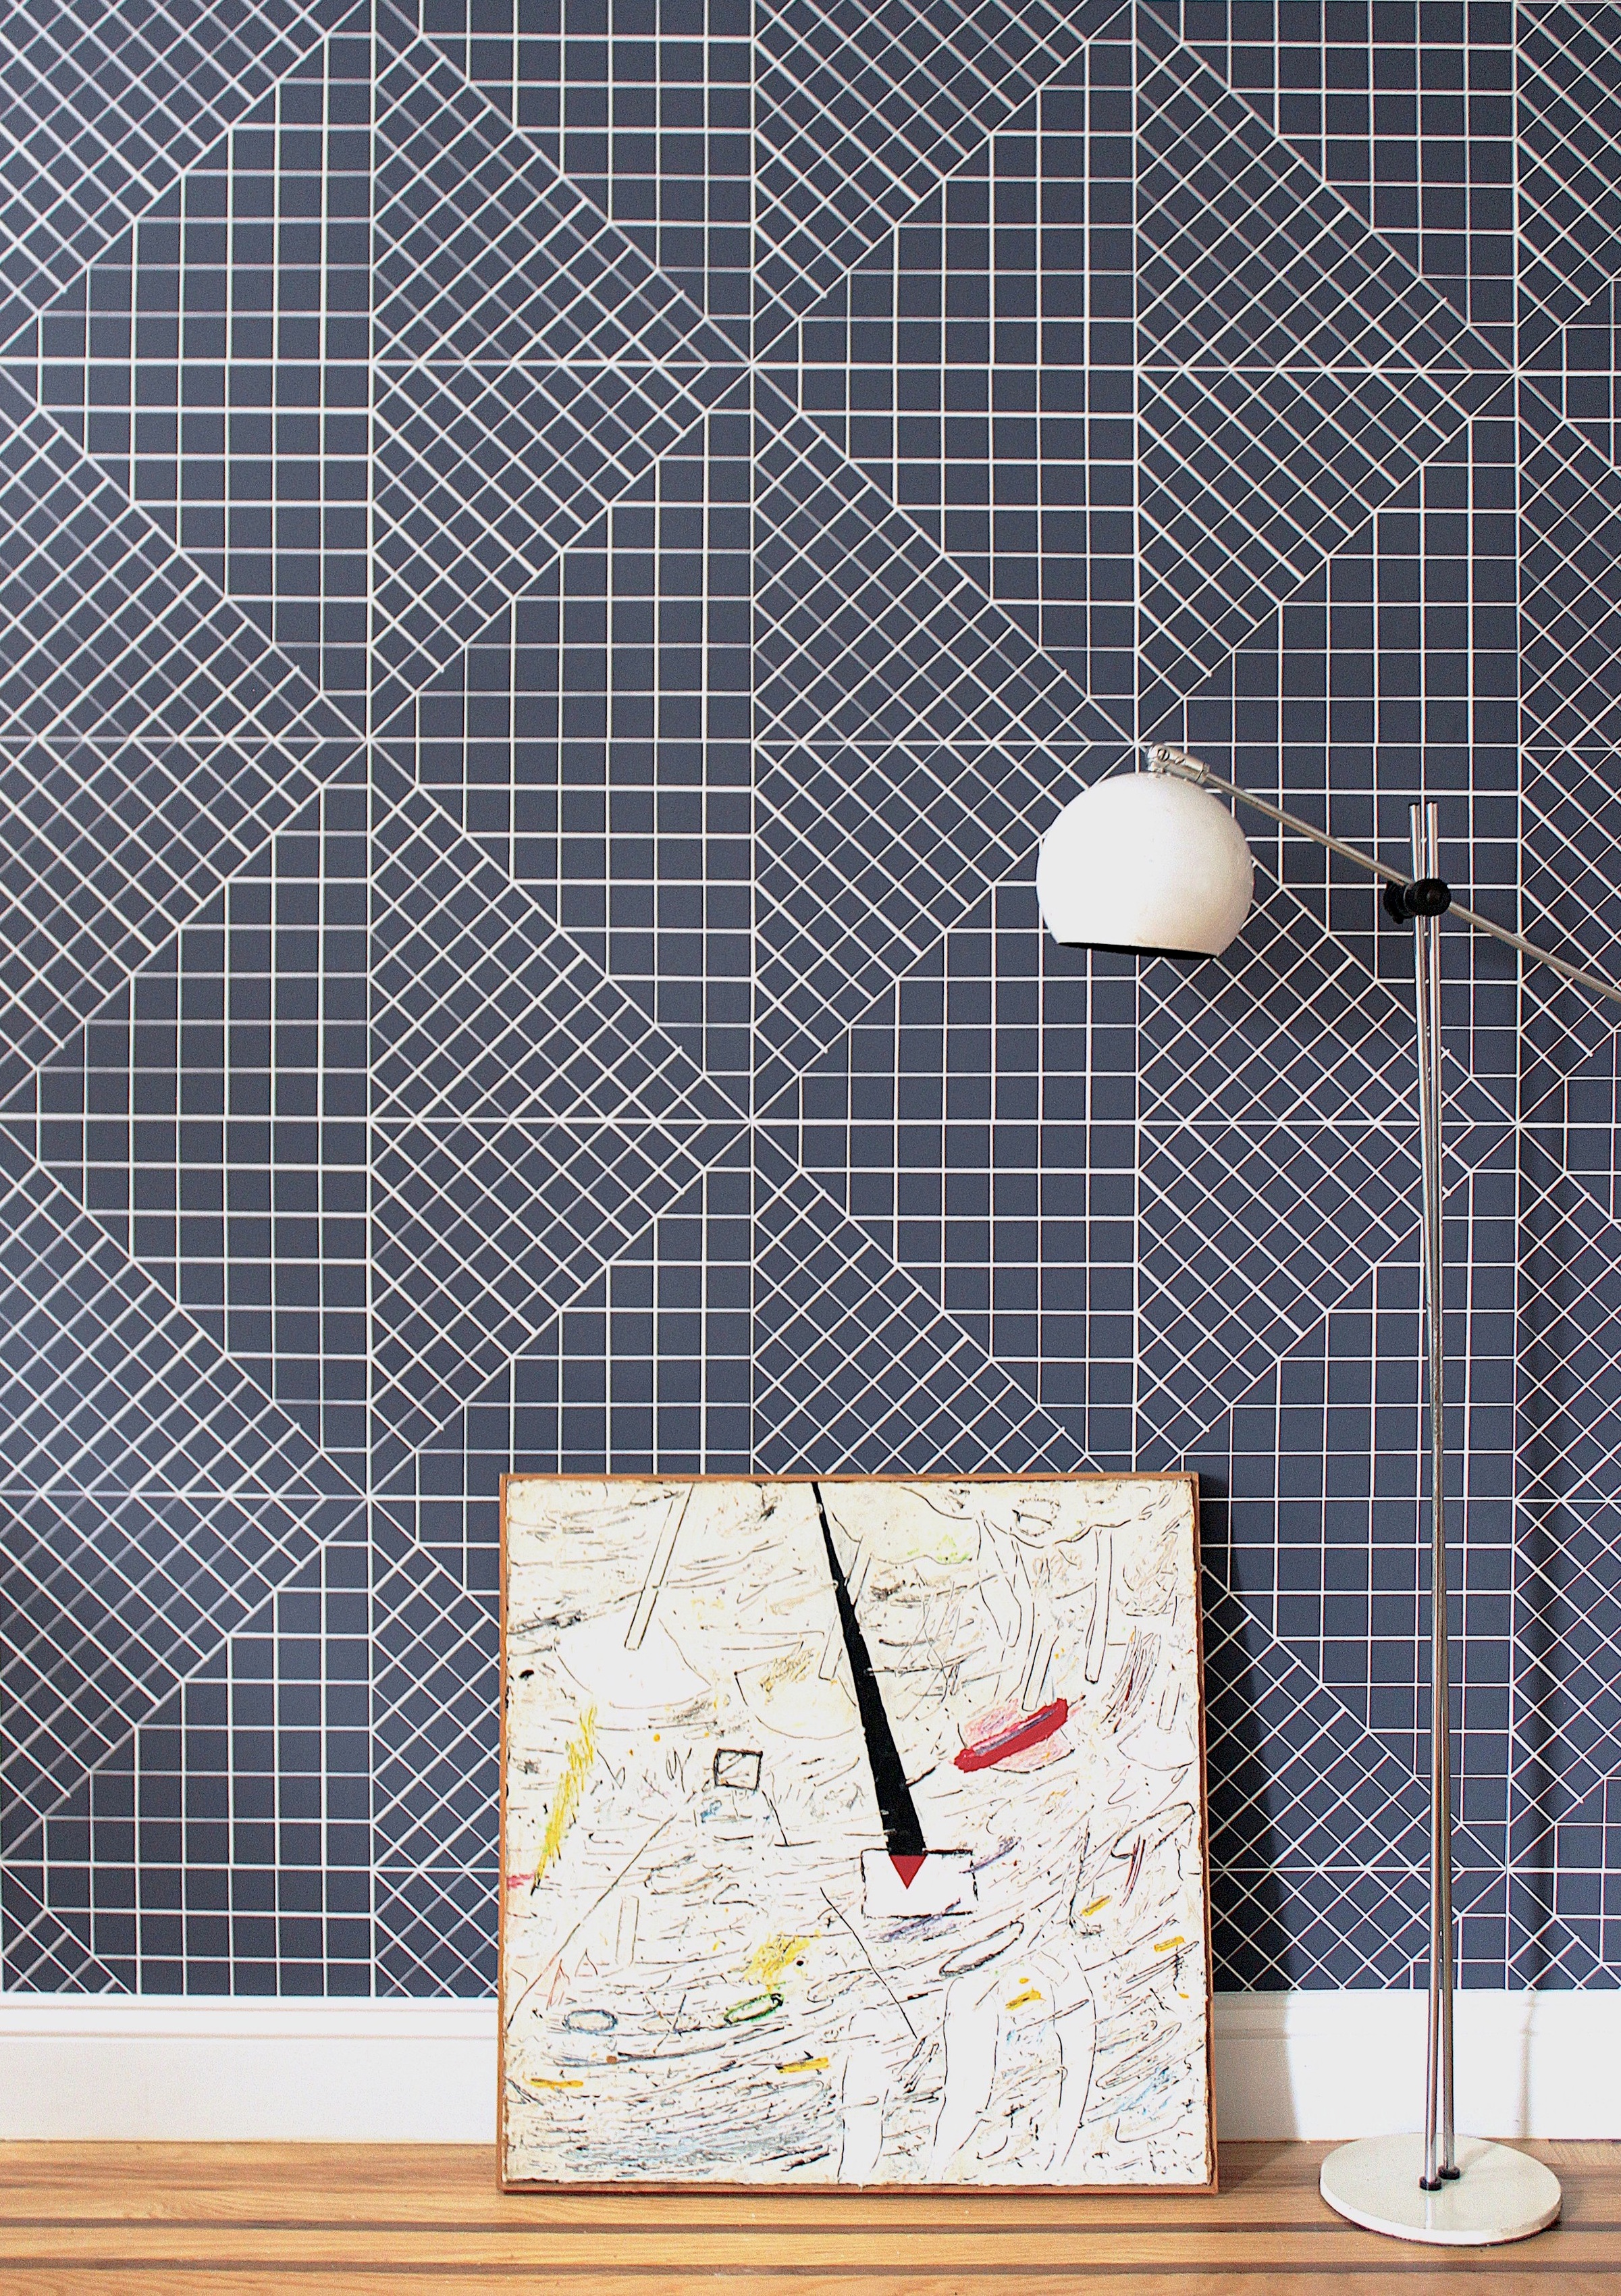 """GRAPH   EVOCATIVE OF BLUEPRINTS, GRAPH'S GRIDLINES CREATE A DELICATE TEXTURE  AVAILABLE IN DENIM OR NAVY BLUE  HAND SCREEN PRINTED IN NY  ROLL MEASURES 27""""x15', UNTRIMMED AND UNPASTED  CLASS A FIRE RATED  LEAD TIME 3-4 WEEKS  $165/ROLL"""